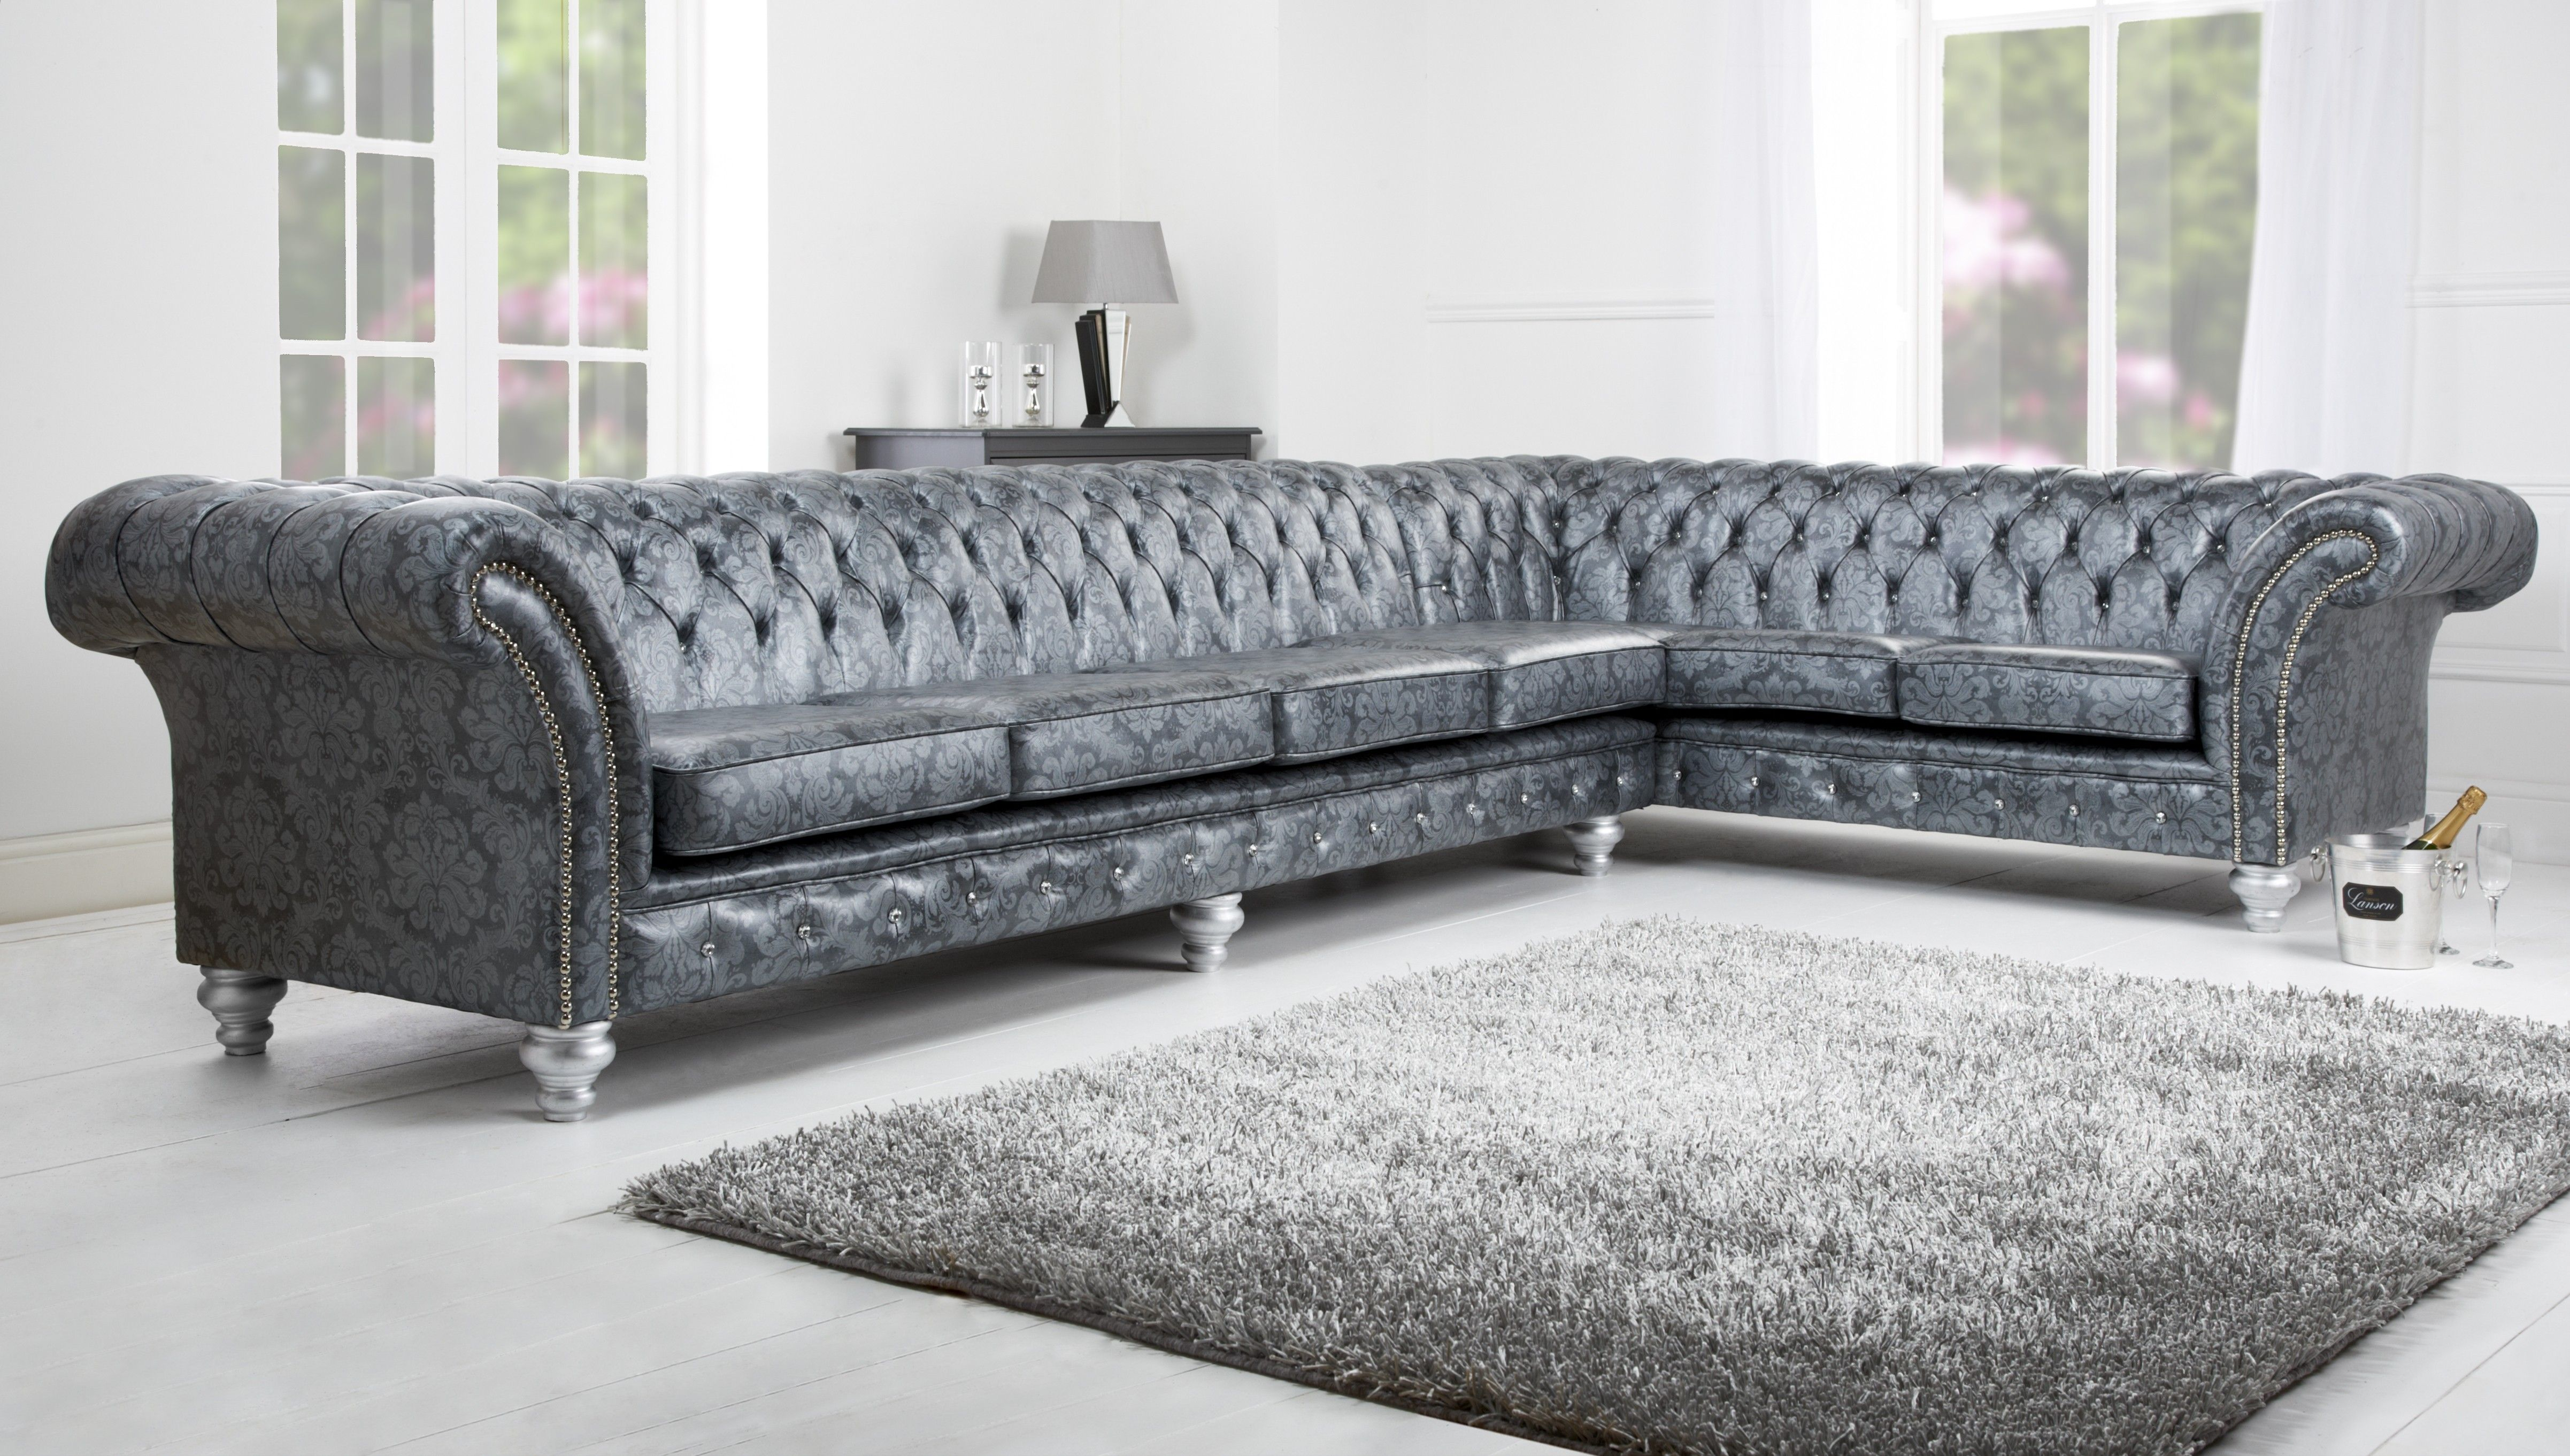 Awesome Cool Grey Tufted L Shaped Sofa Sectional Ideas For Living Room With  Flourish Pattern And High Pleated Arms Plus Leathered Cover And Silver  Finish Wood Bun ...